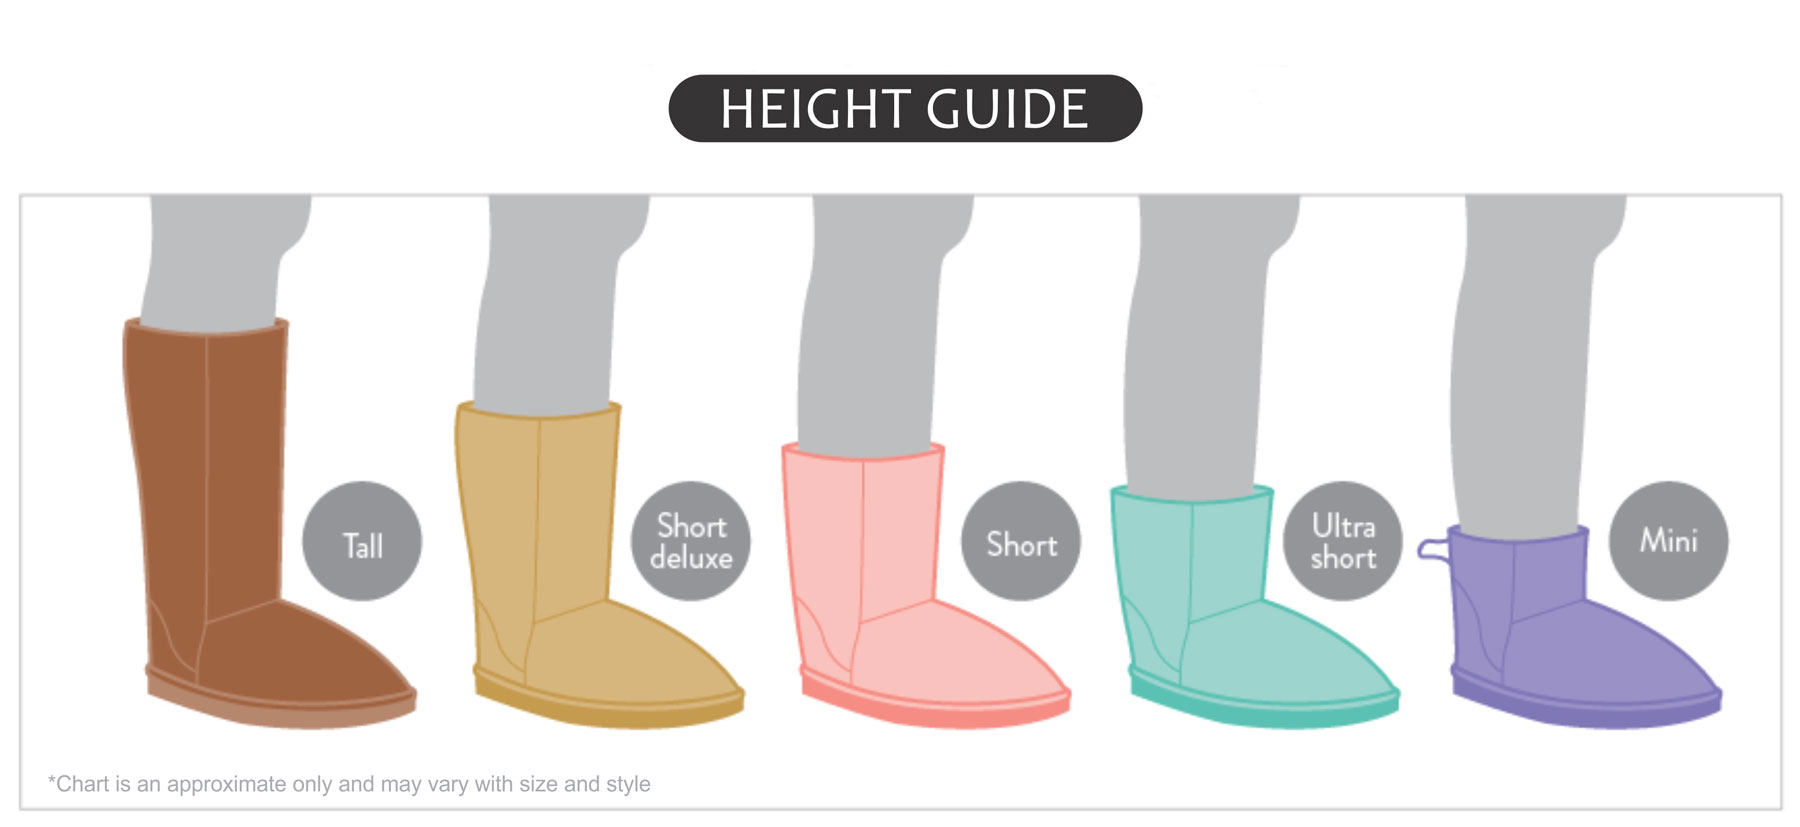 Guide to ugg boot heights and styles